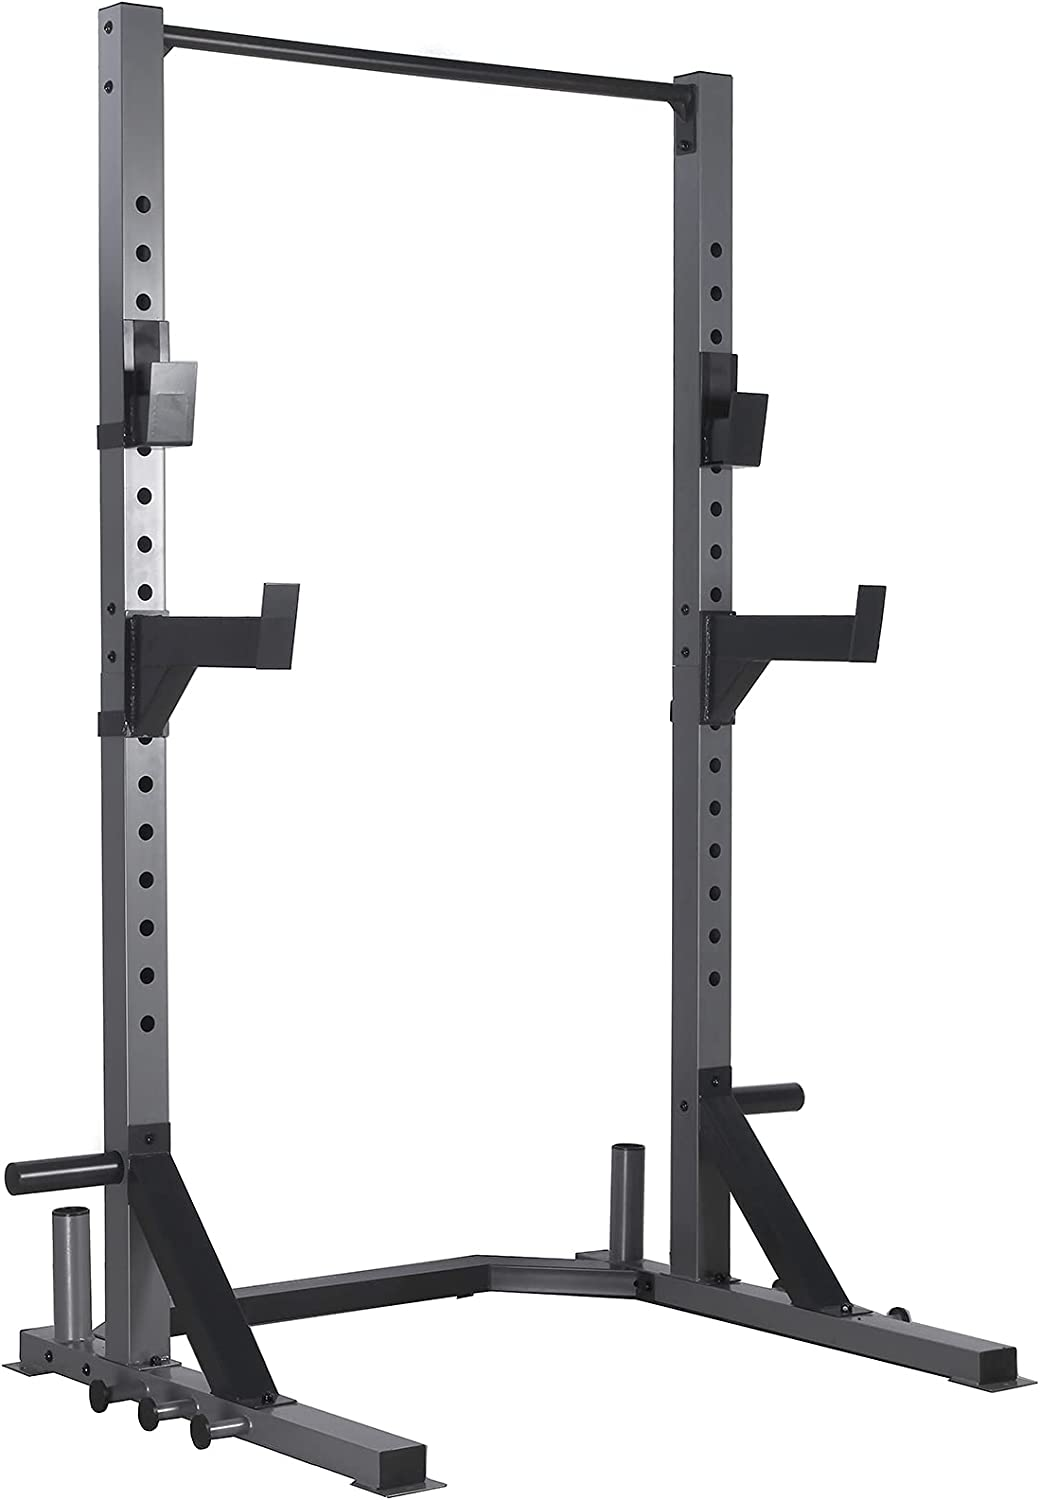 MENCIRO Power Rack, Deluxe Squat Rack with Pull Up Bar, J-Hooks and Safety Catches for Home Gym Full Body Multi-Function Fitness Workout Like Pull ups, Squats, Deadlifts, Bench Press